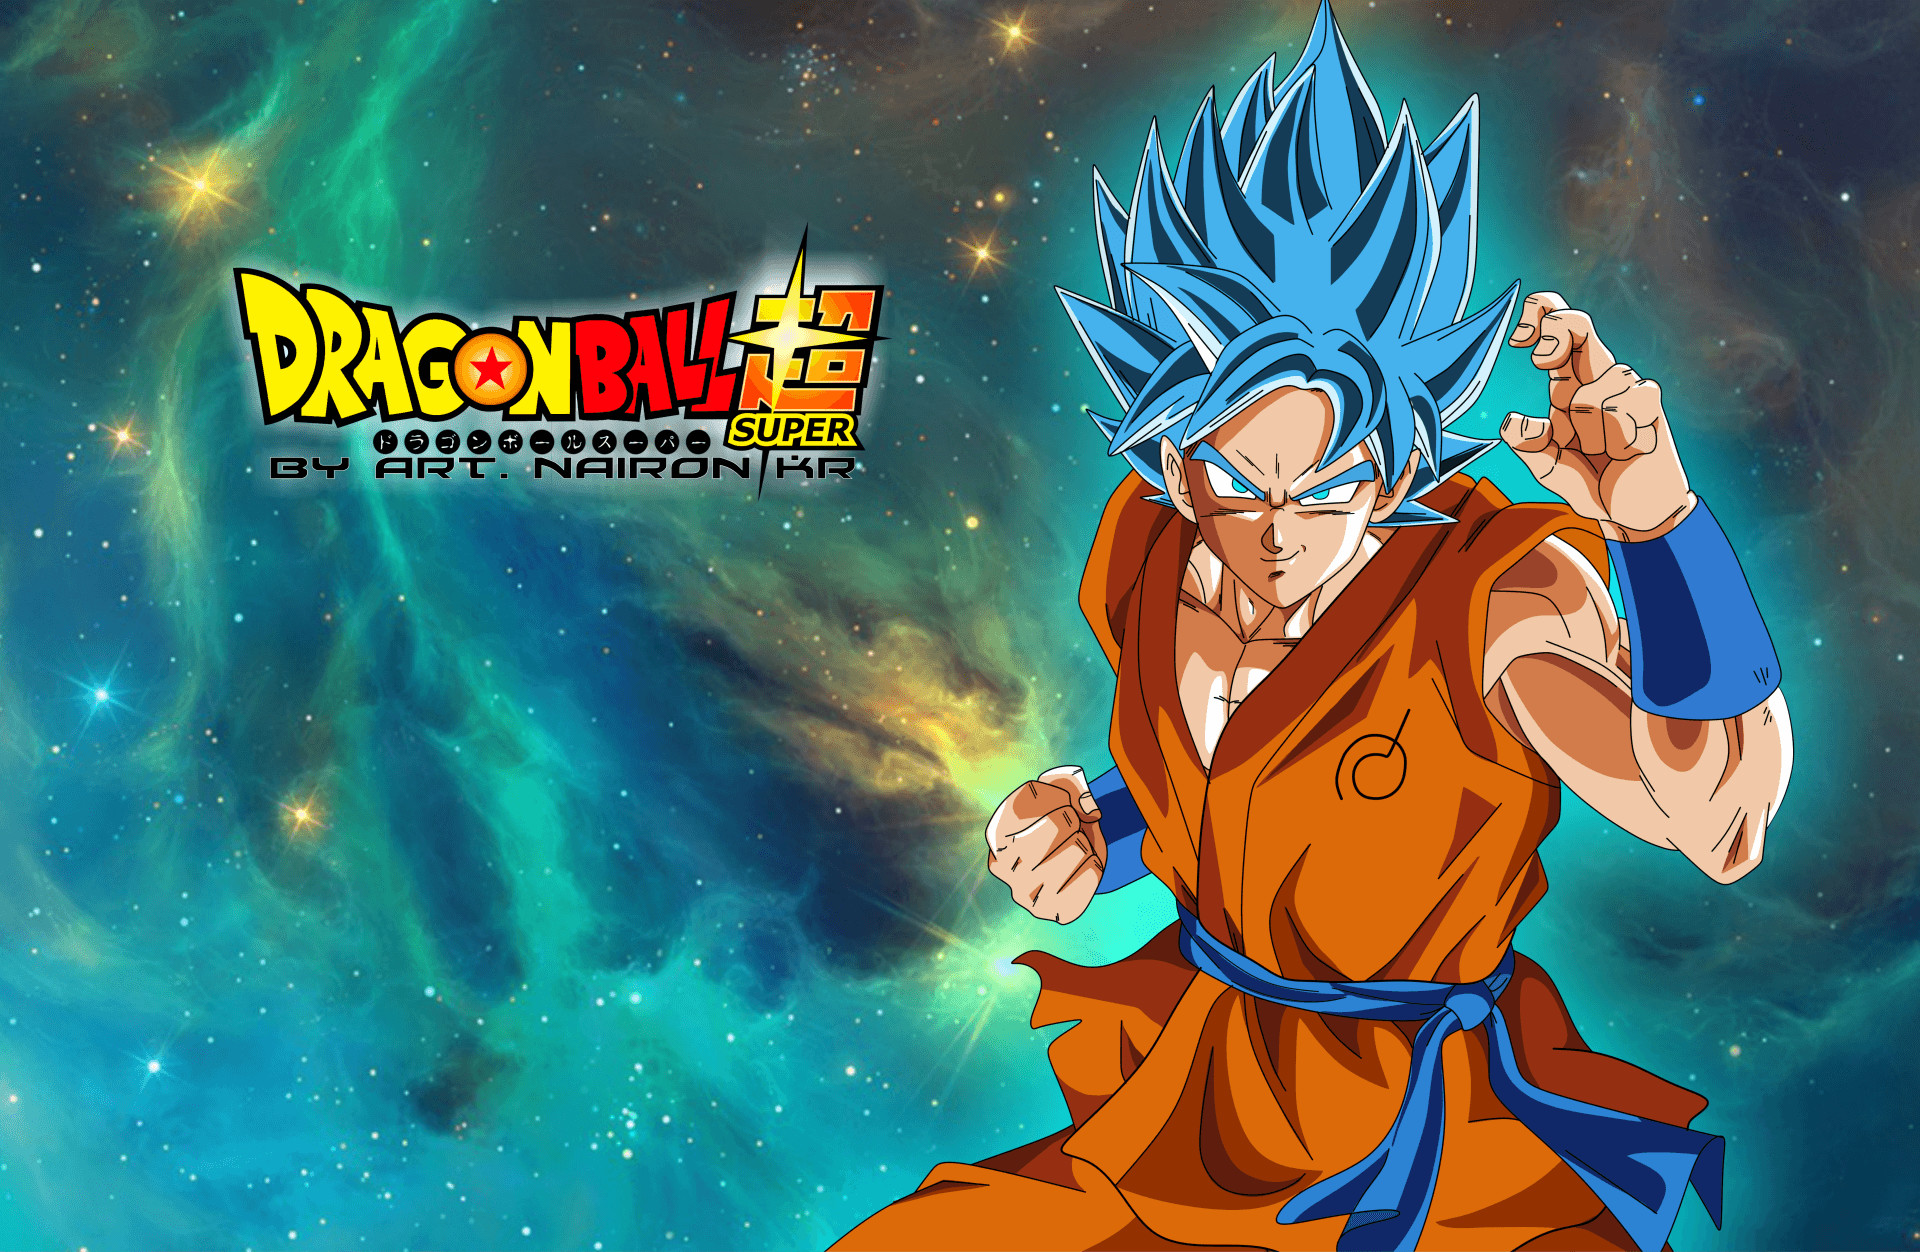 1920x1252 232 Dragon Ball Super HD Wallpapers | Backgrounds - Wallpaper Abyss